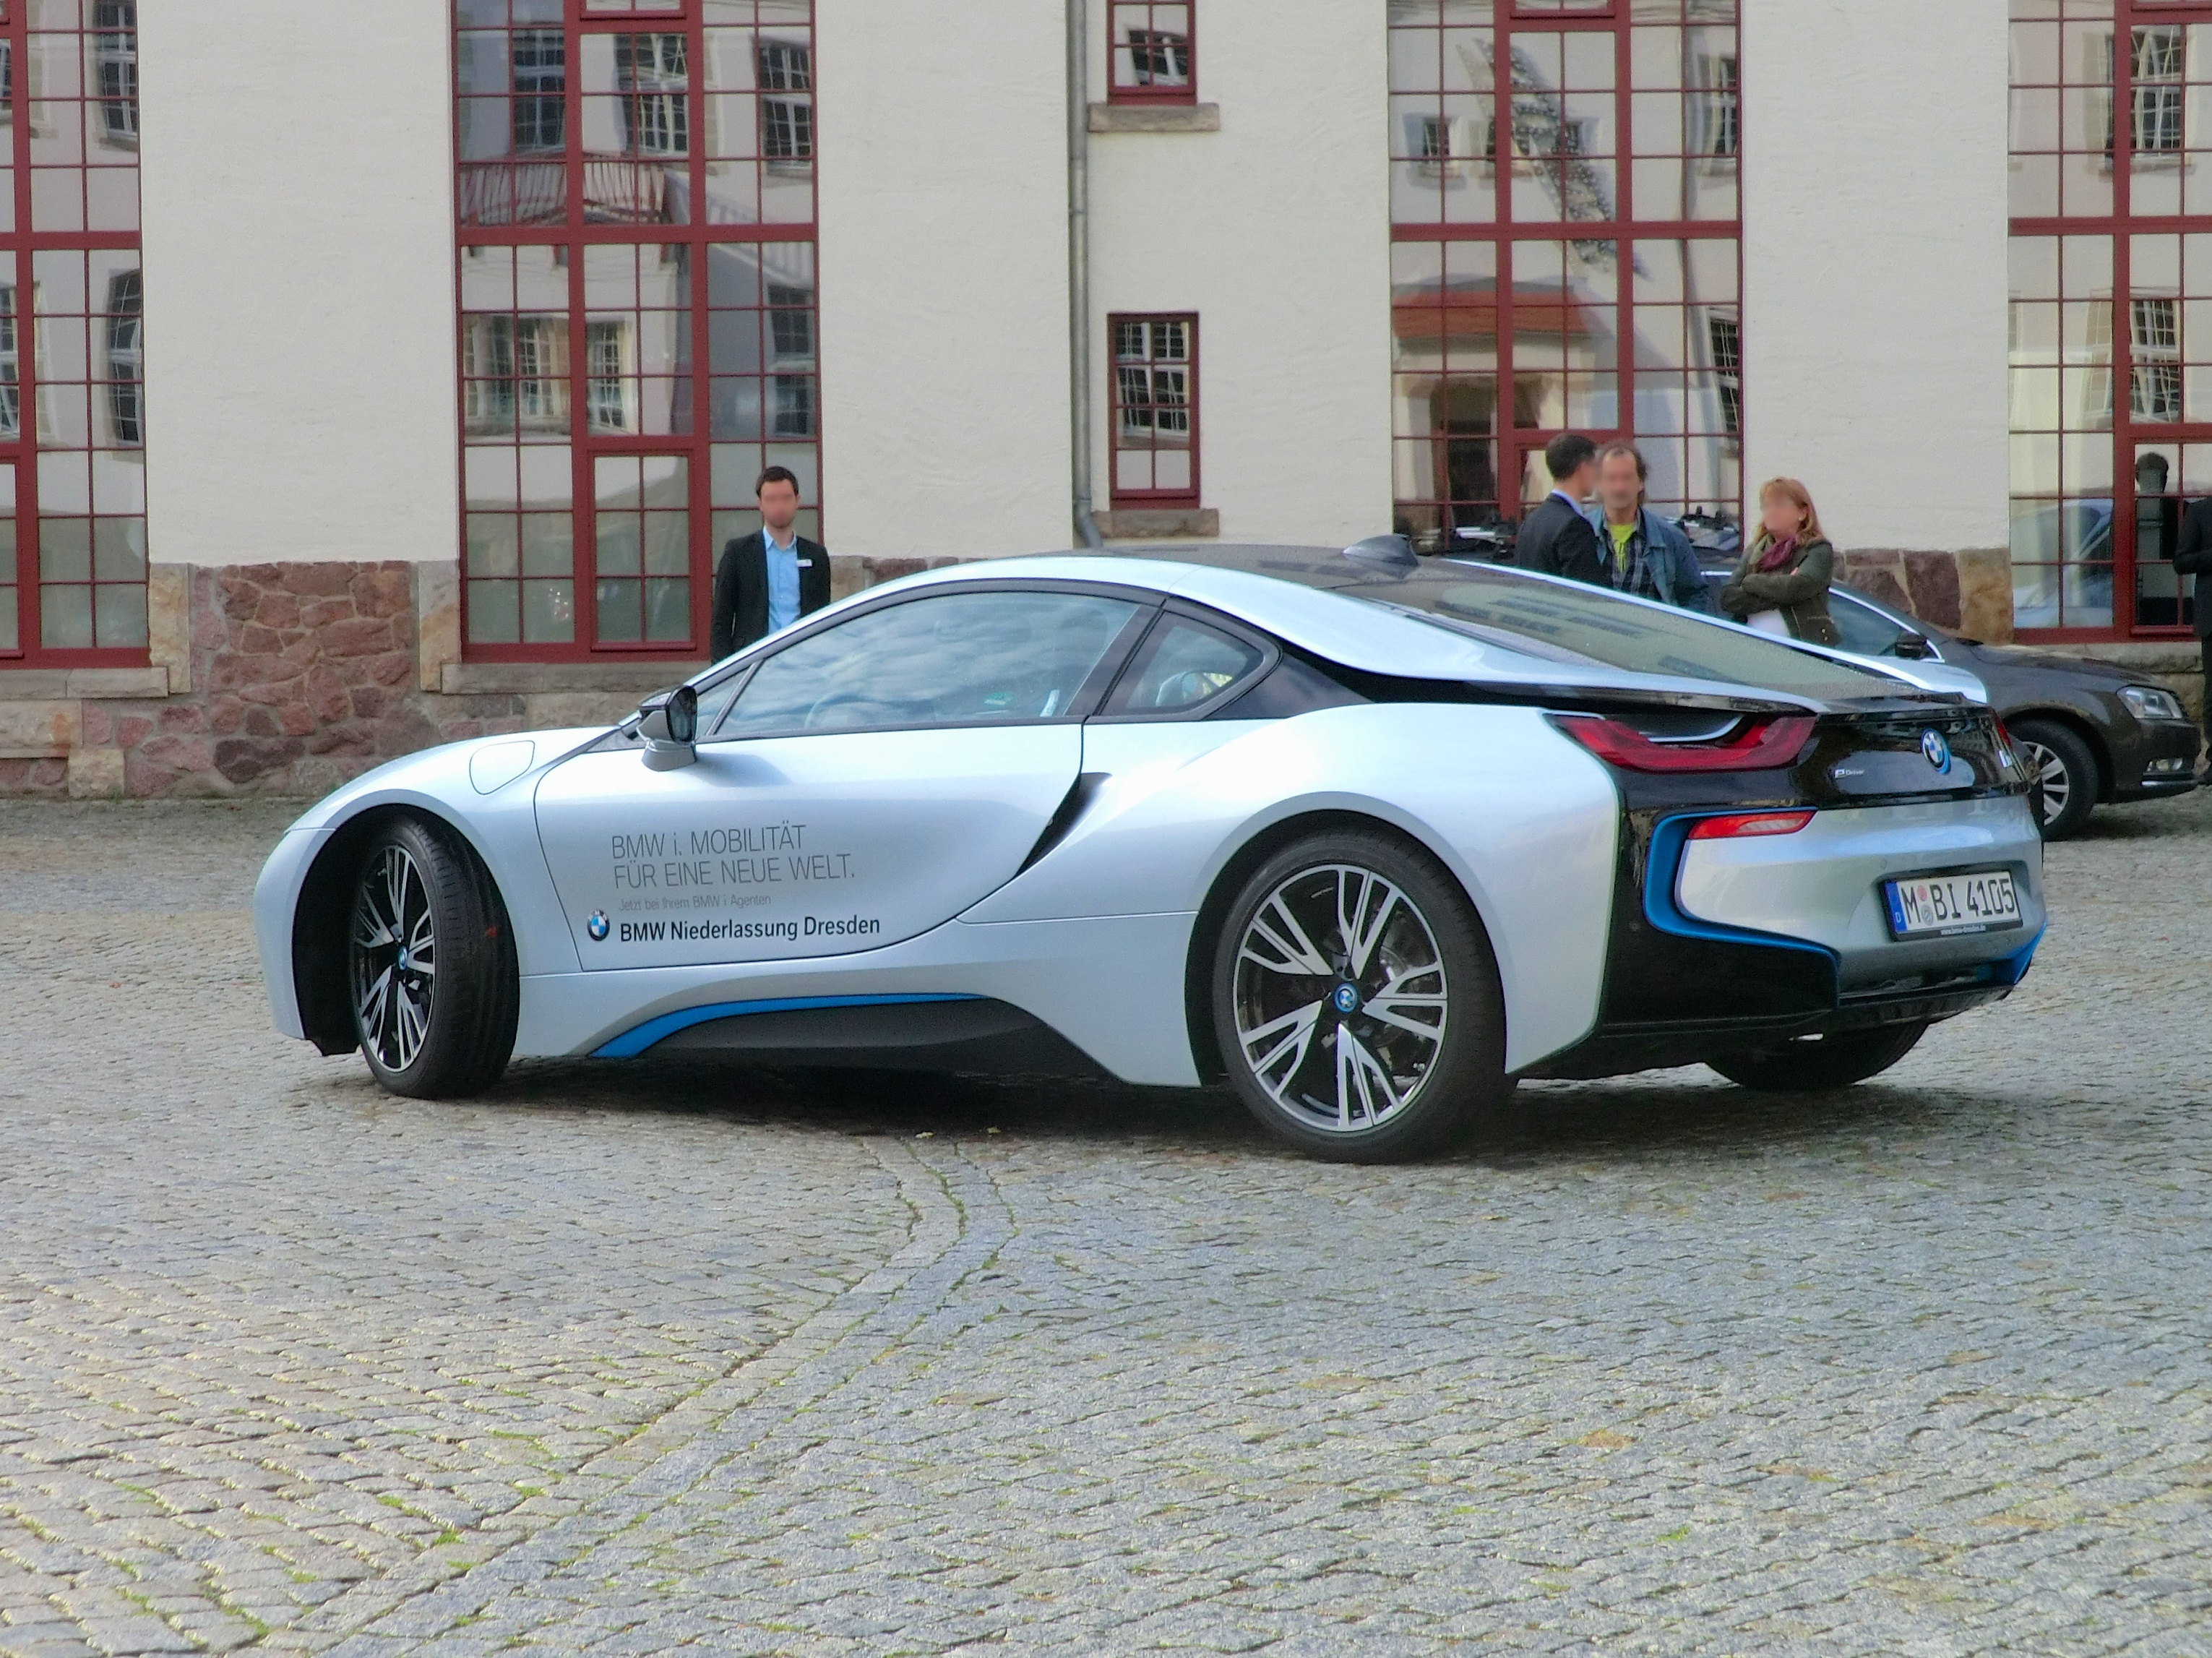 file bmw i8 in dresden hellerau 1 jpg wikimedia commons. Black Bedroom Furniture Sets. Home Design Ideas